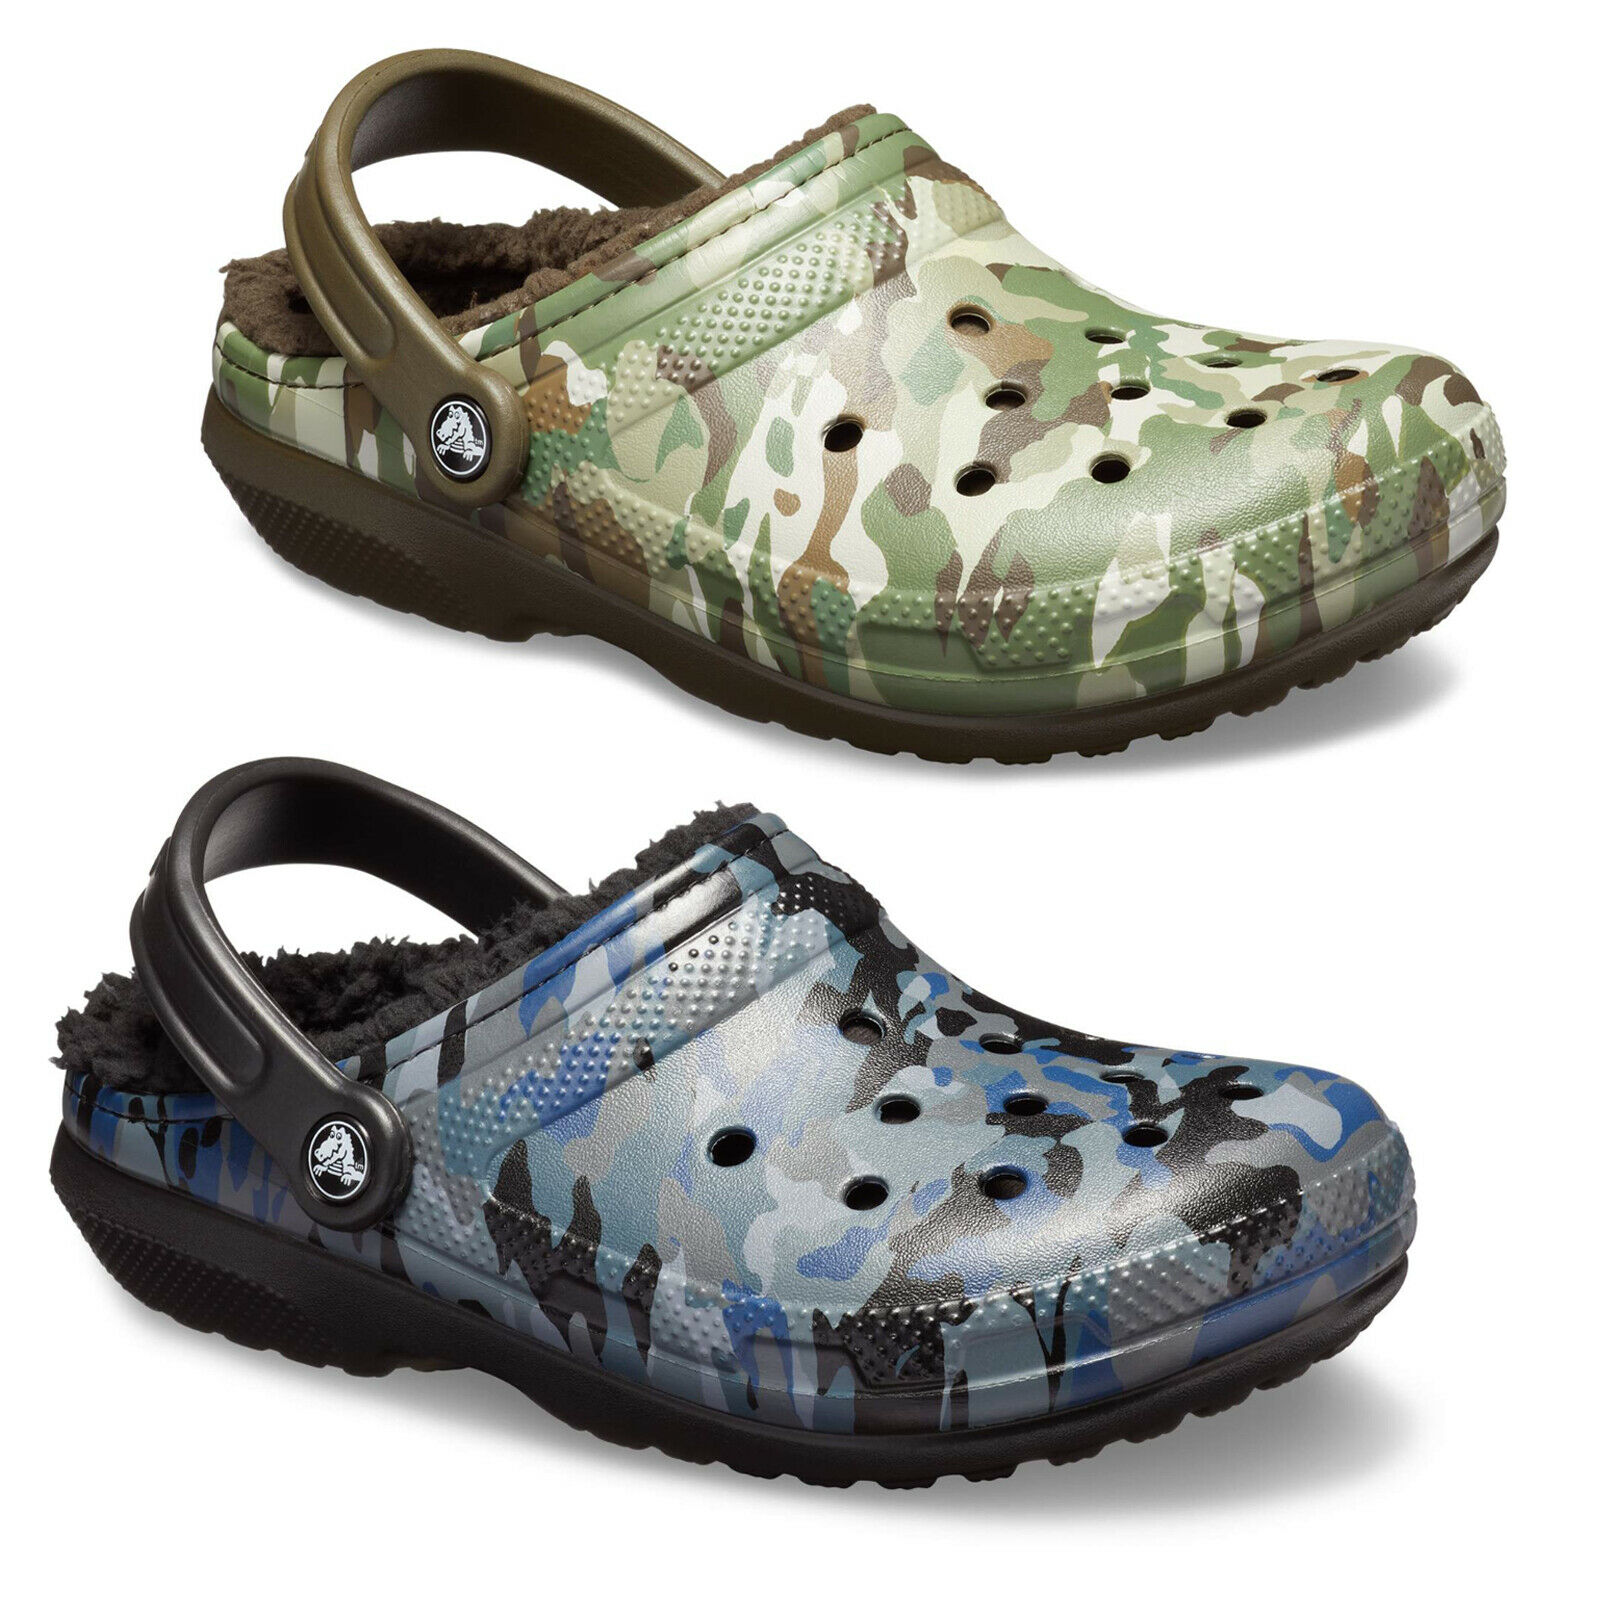 Realtree  CROCS Classic WINTER  Fuzzy Plush LINED vegan Clogs Slippers Shoes